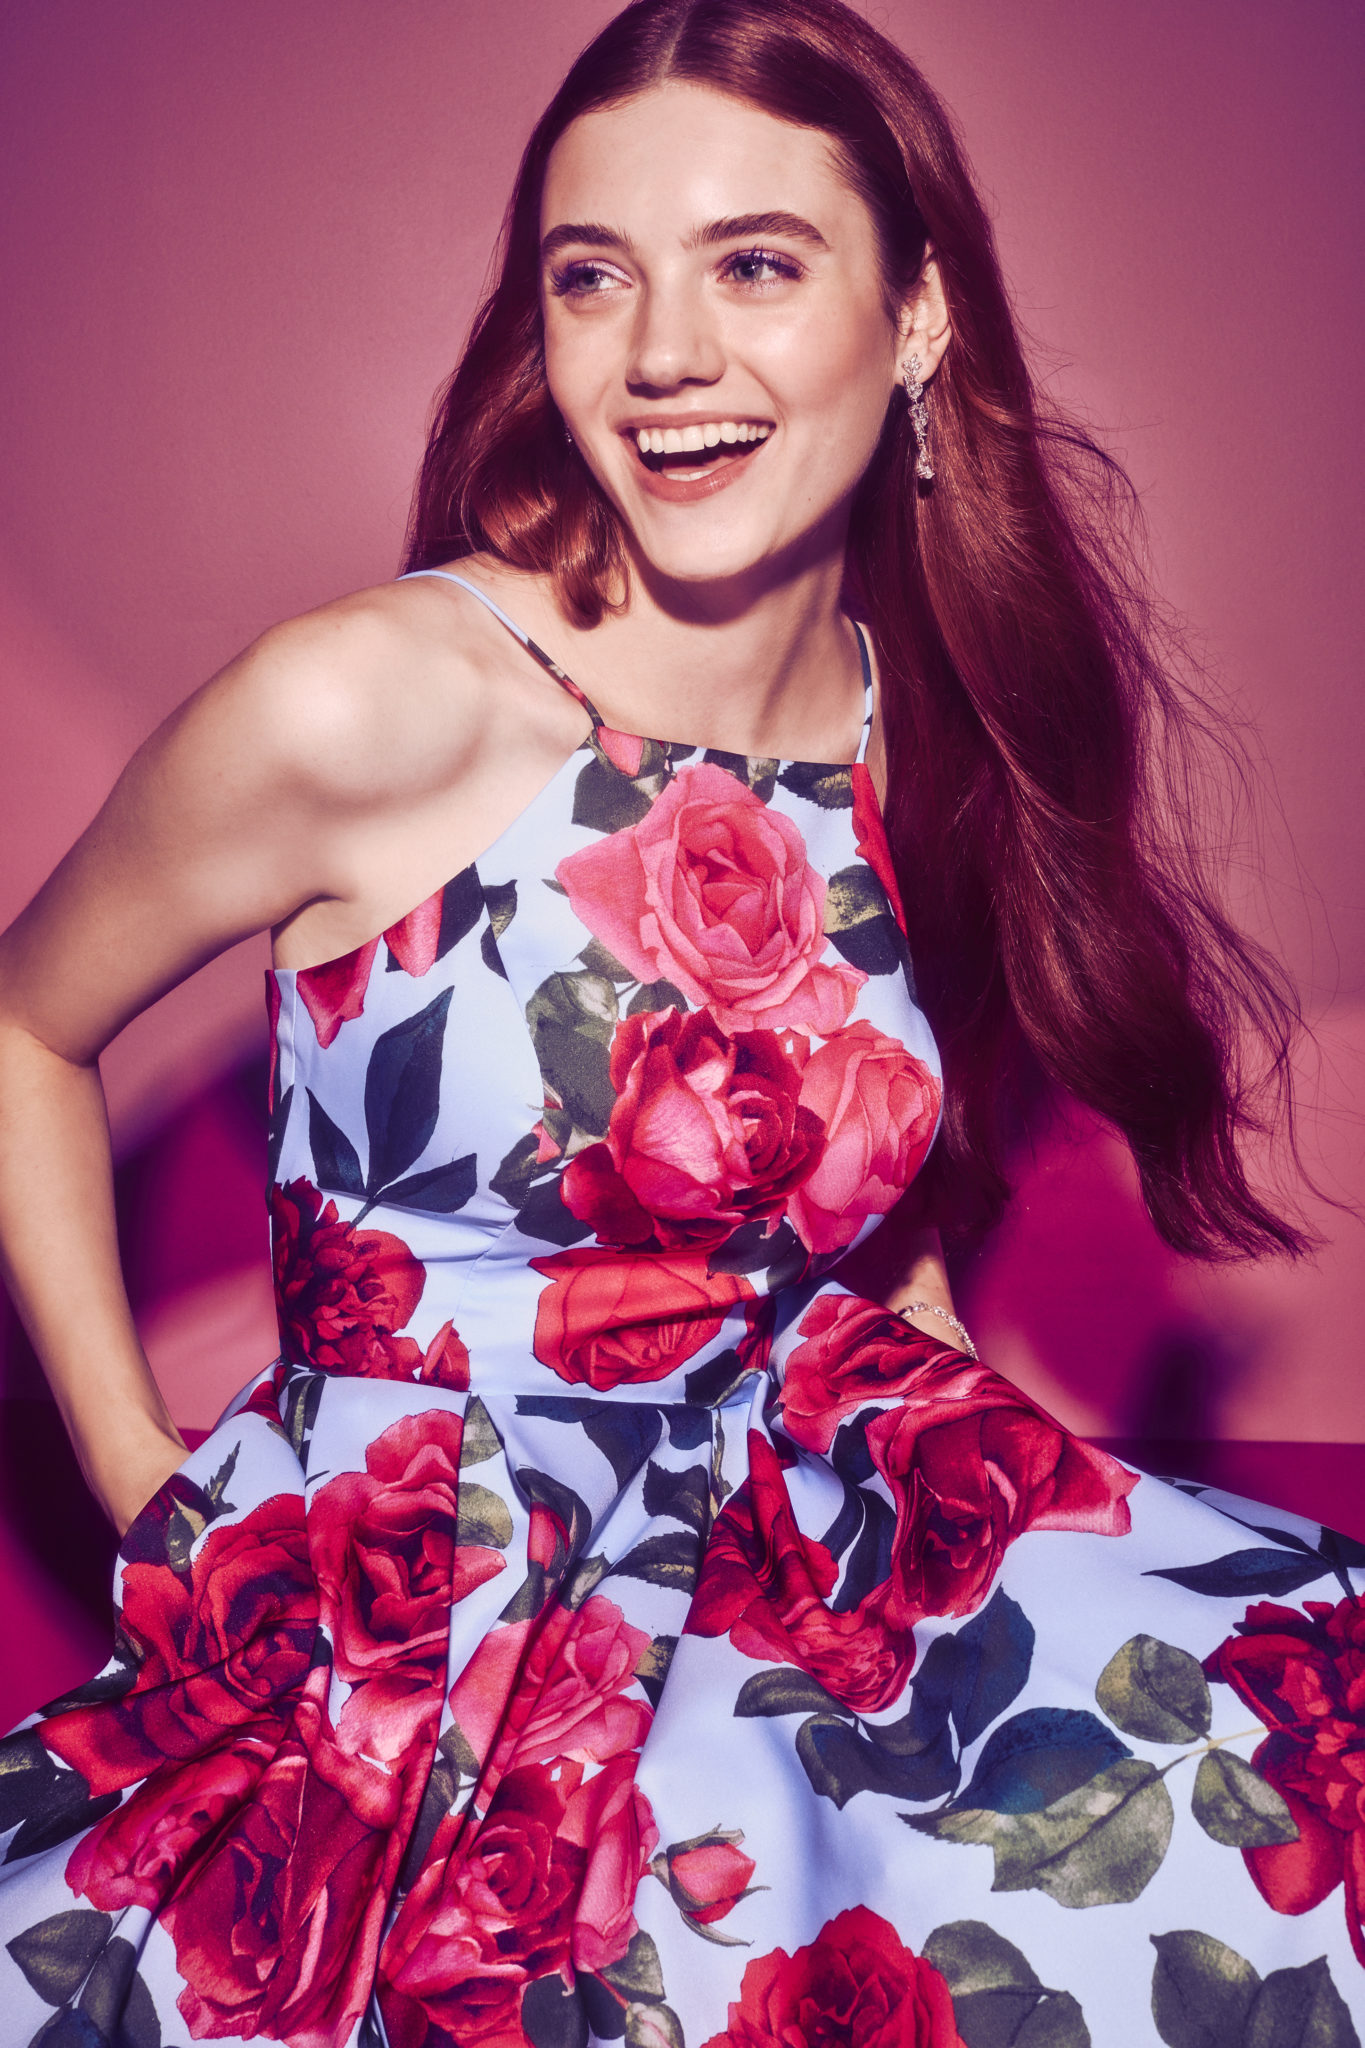 Smiling girl in floral print prom dress with hands in pockets